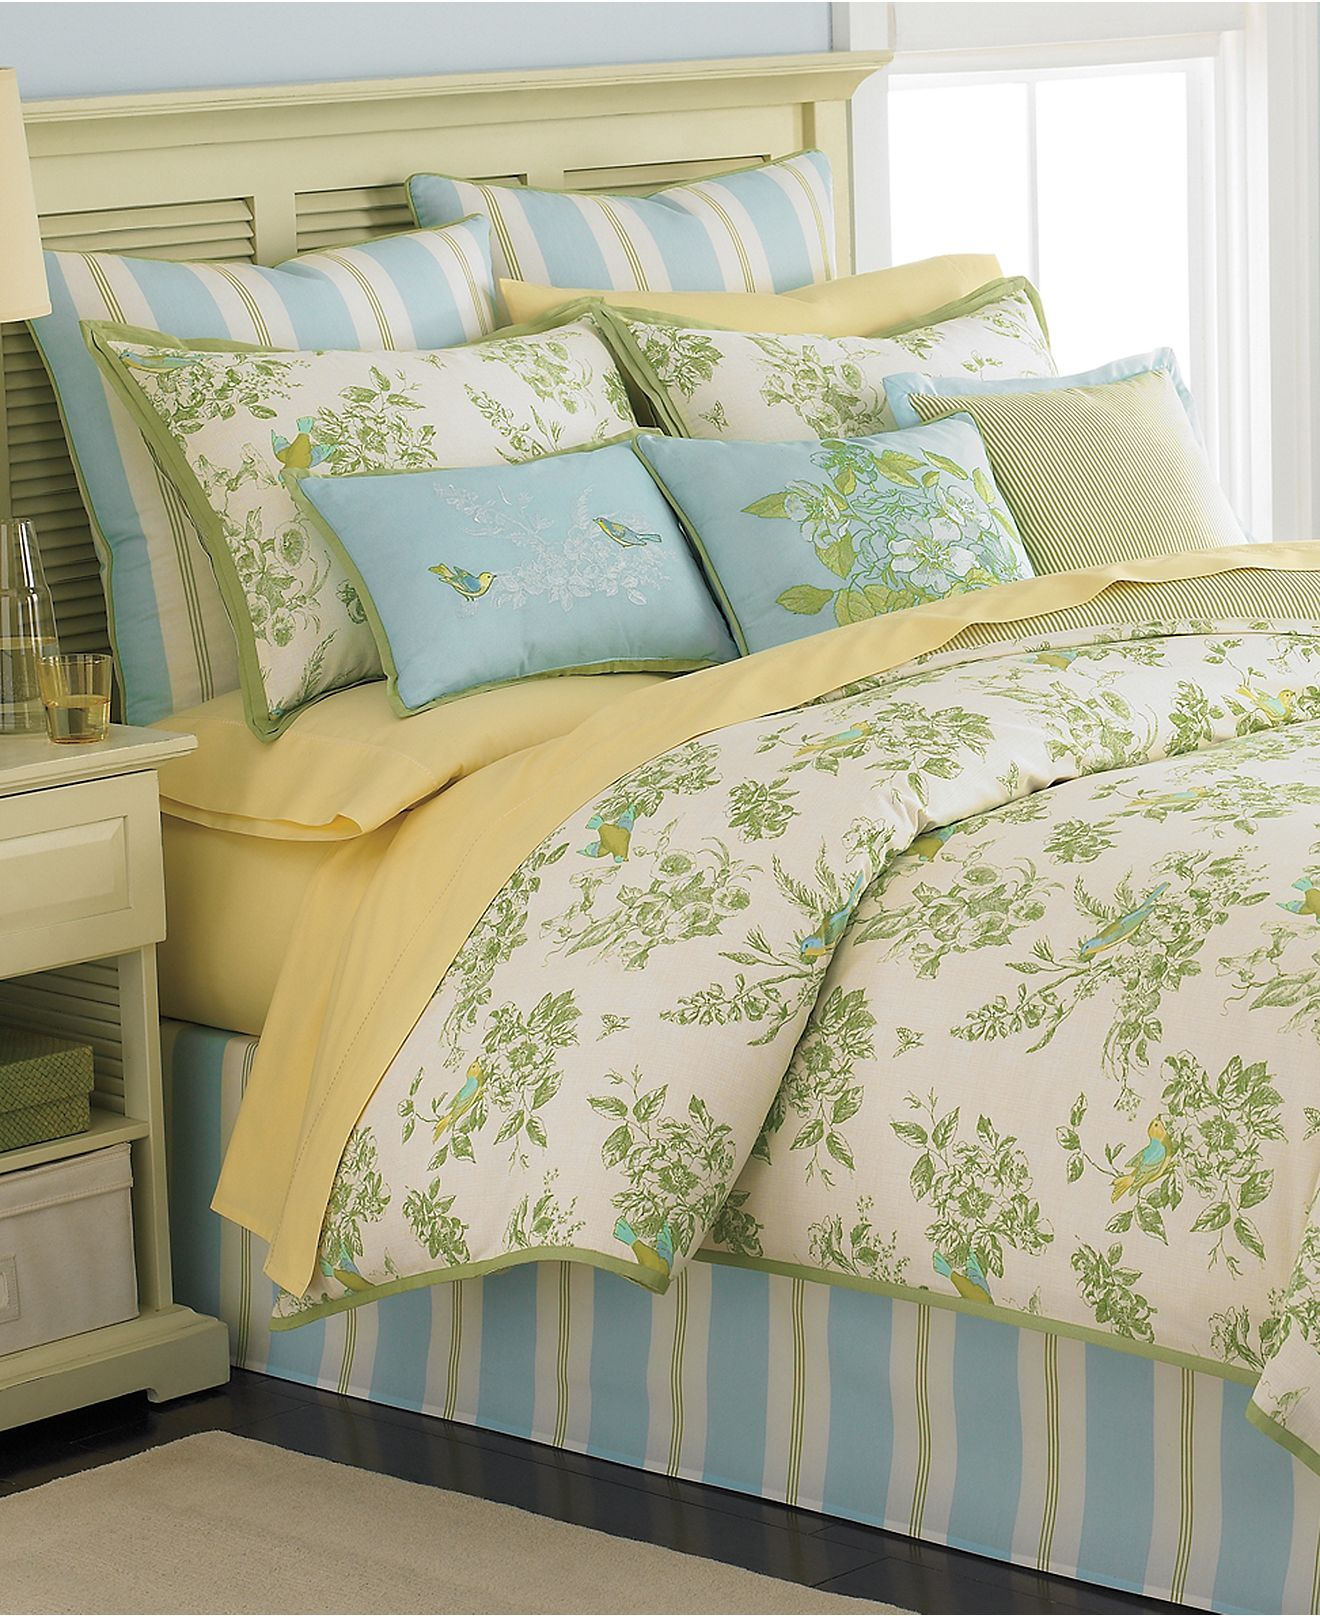 Bedding jardin collection bedding collections bed amp bath macy s - This Is The New Comforter For My Bed I Got It From Macy S Martha Stewart Collection